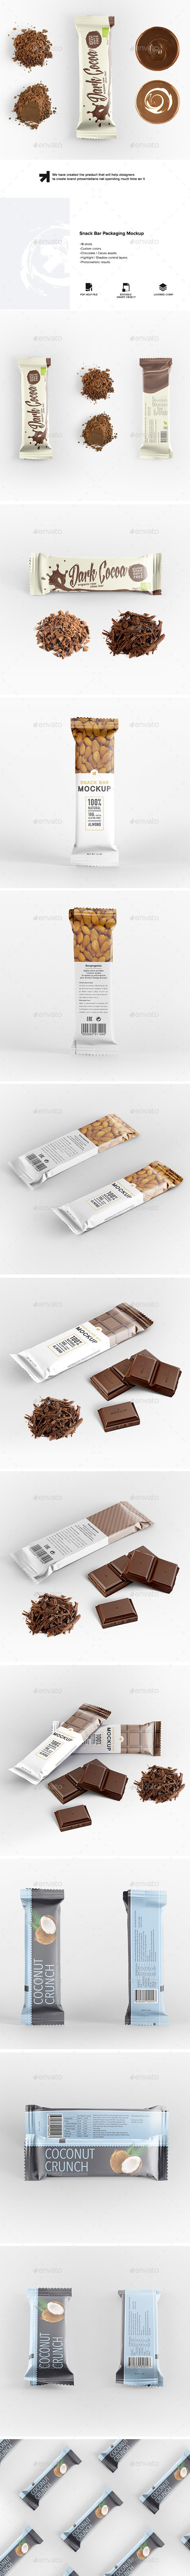 Snack Bar Packaging Mockup - Food and Drink Packaging